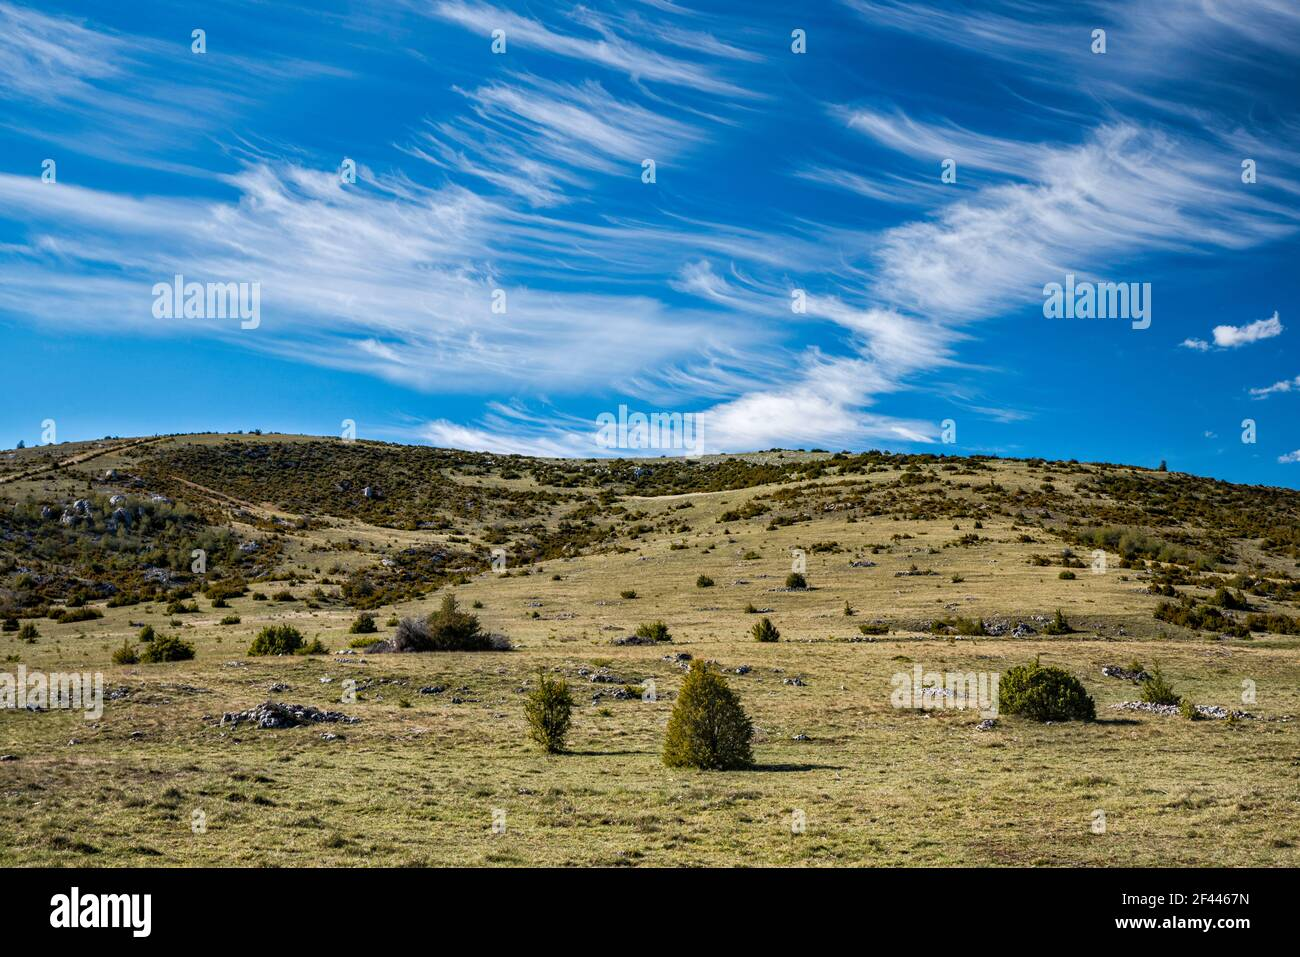 High arid causses landscape, cirrus clouds, view from road D16, at Causse Mejean plateau, Massif Central, Lozere department, Occitanie region, France Stock Photo